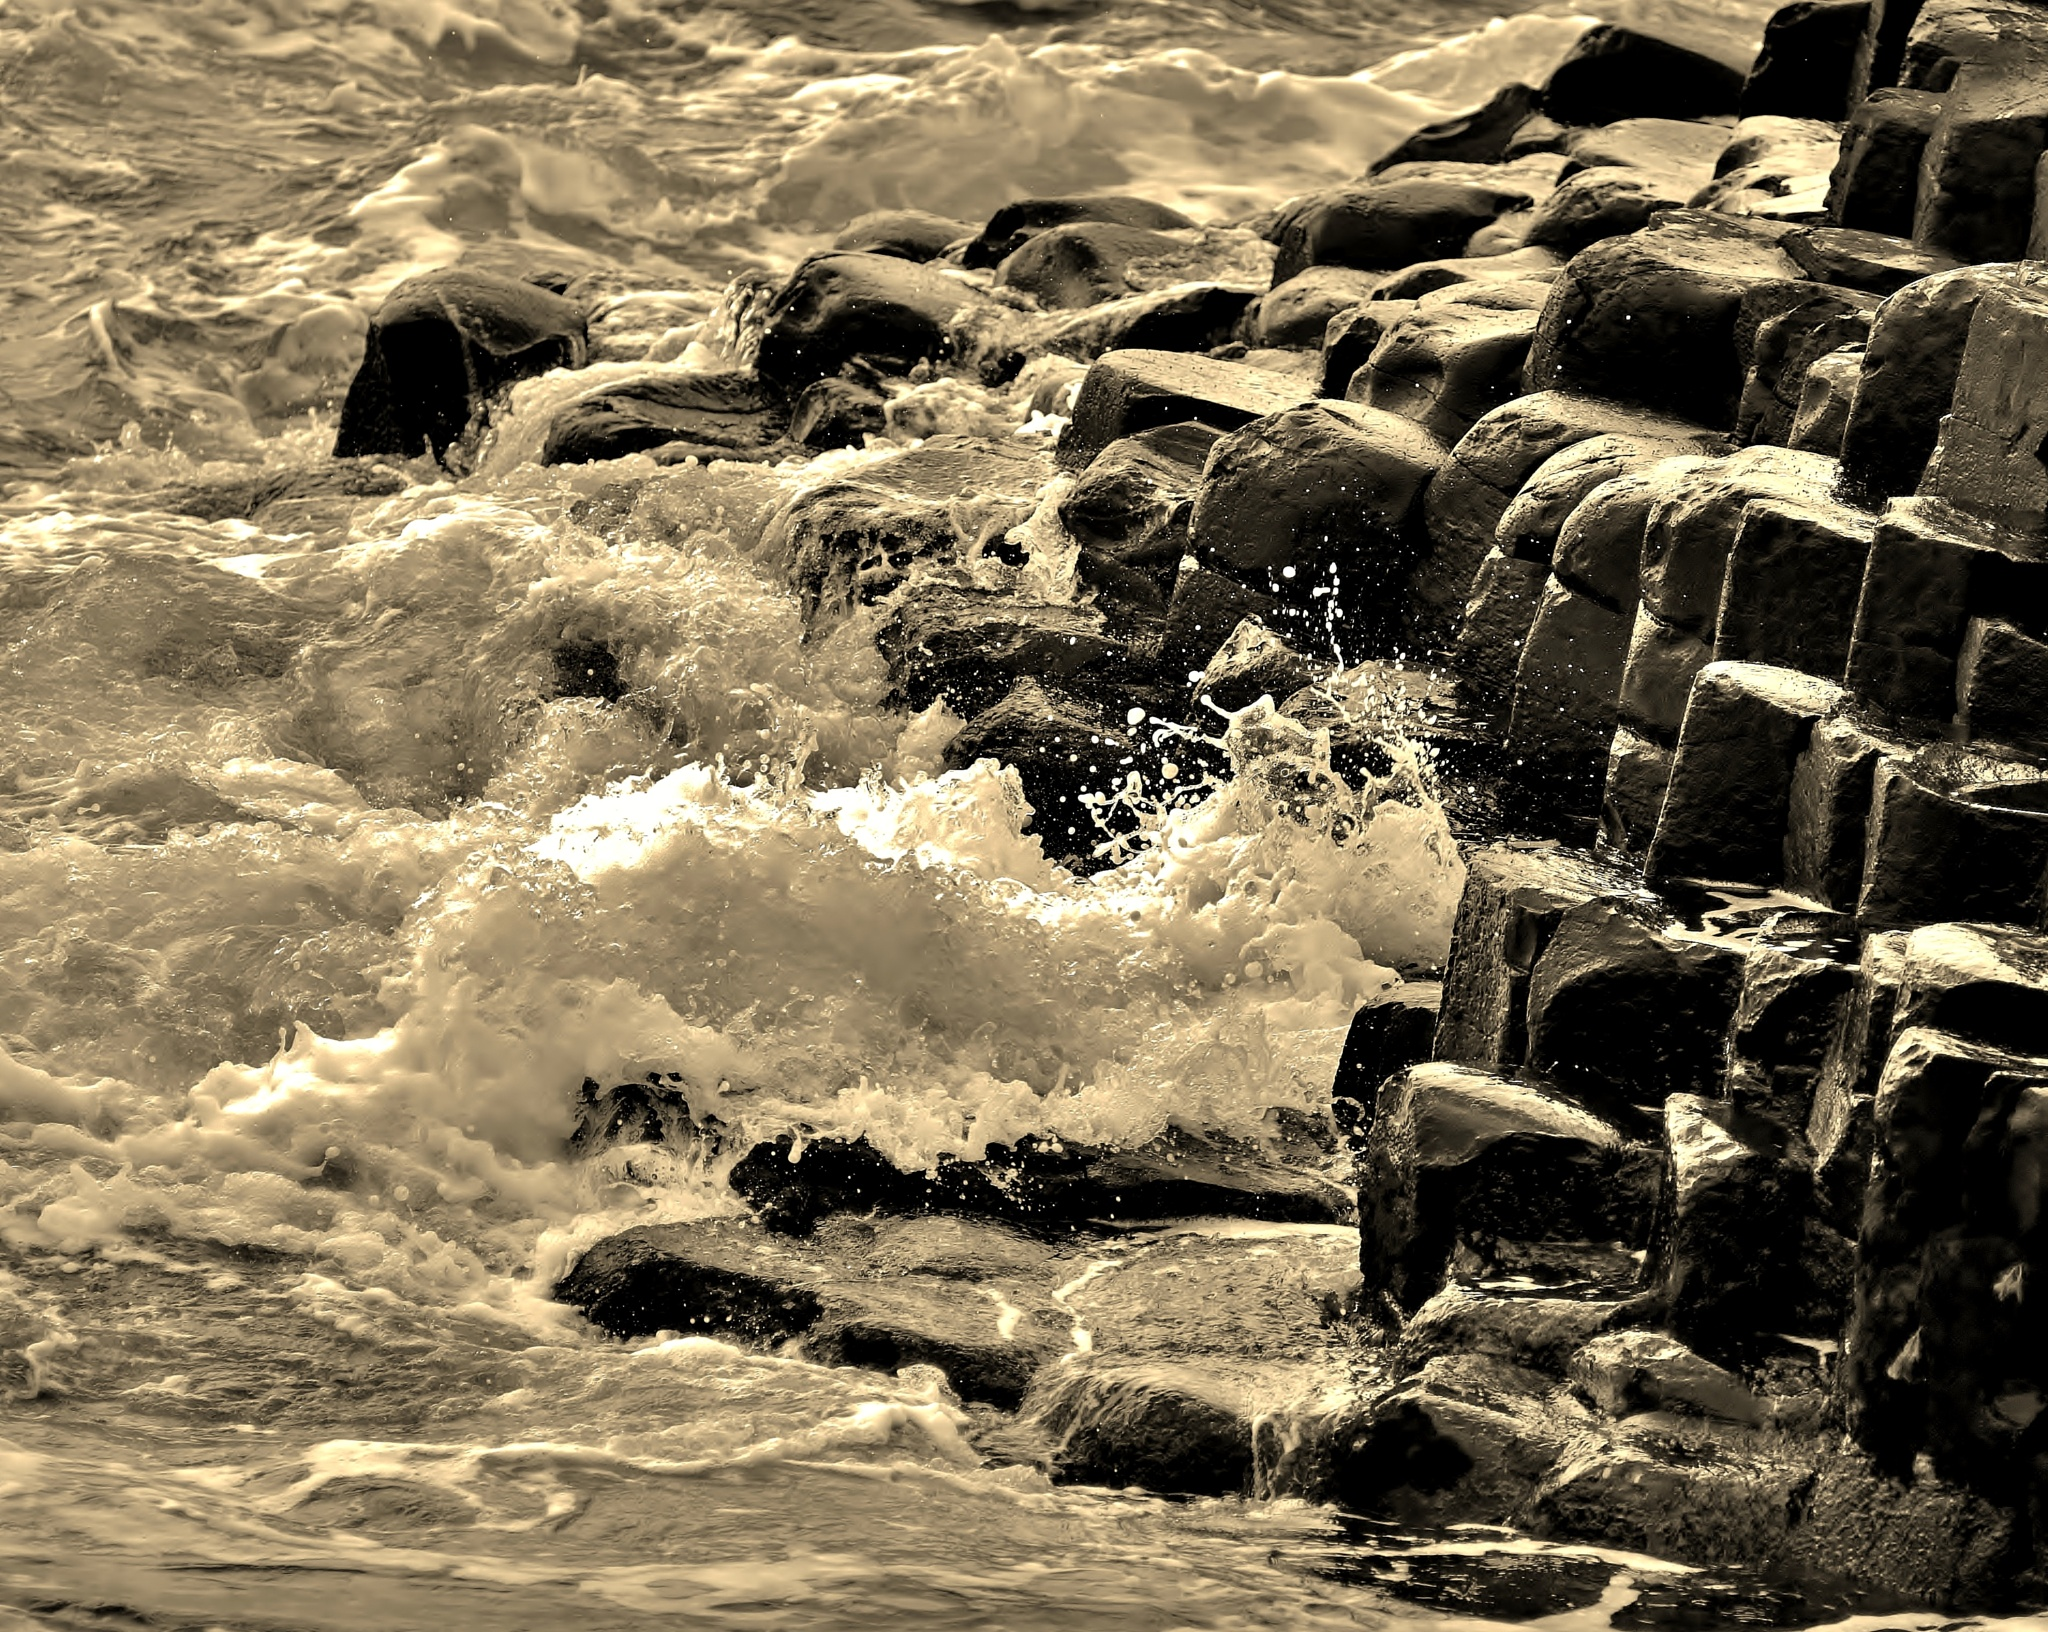 Giants Causeway Wave Crashing by paul.hosker